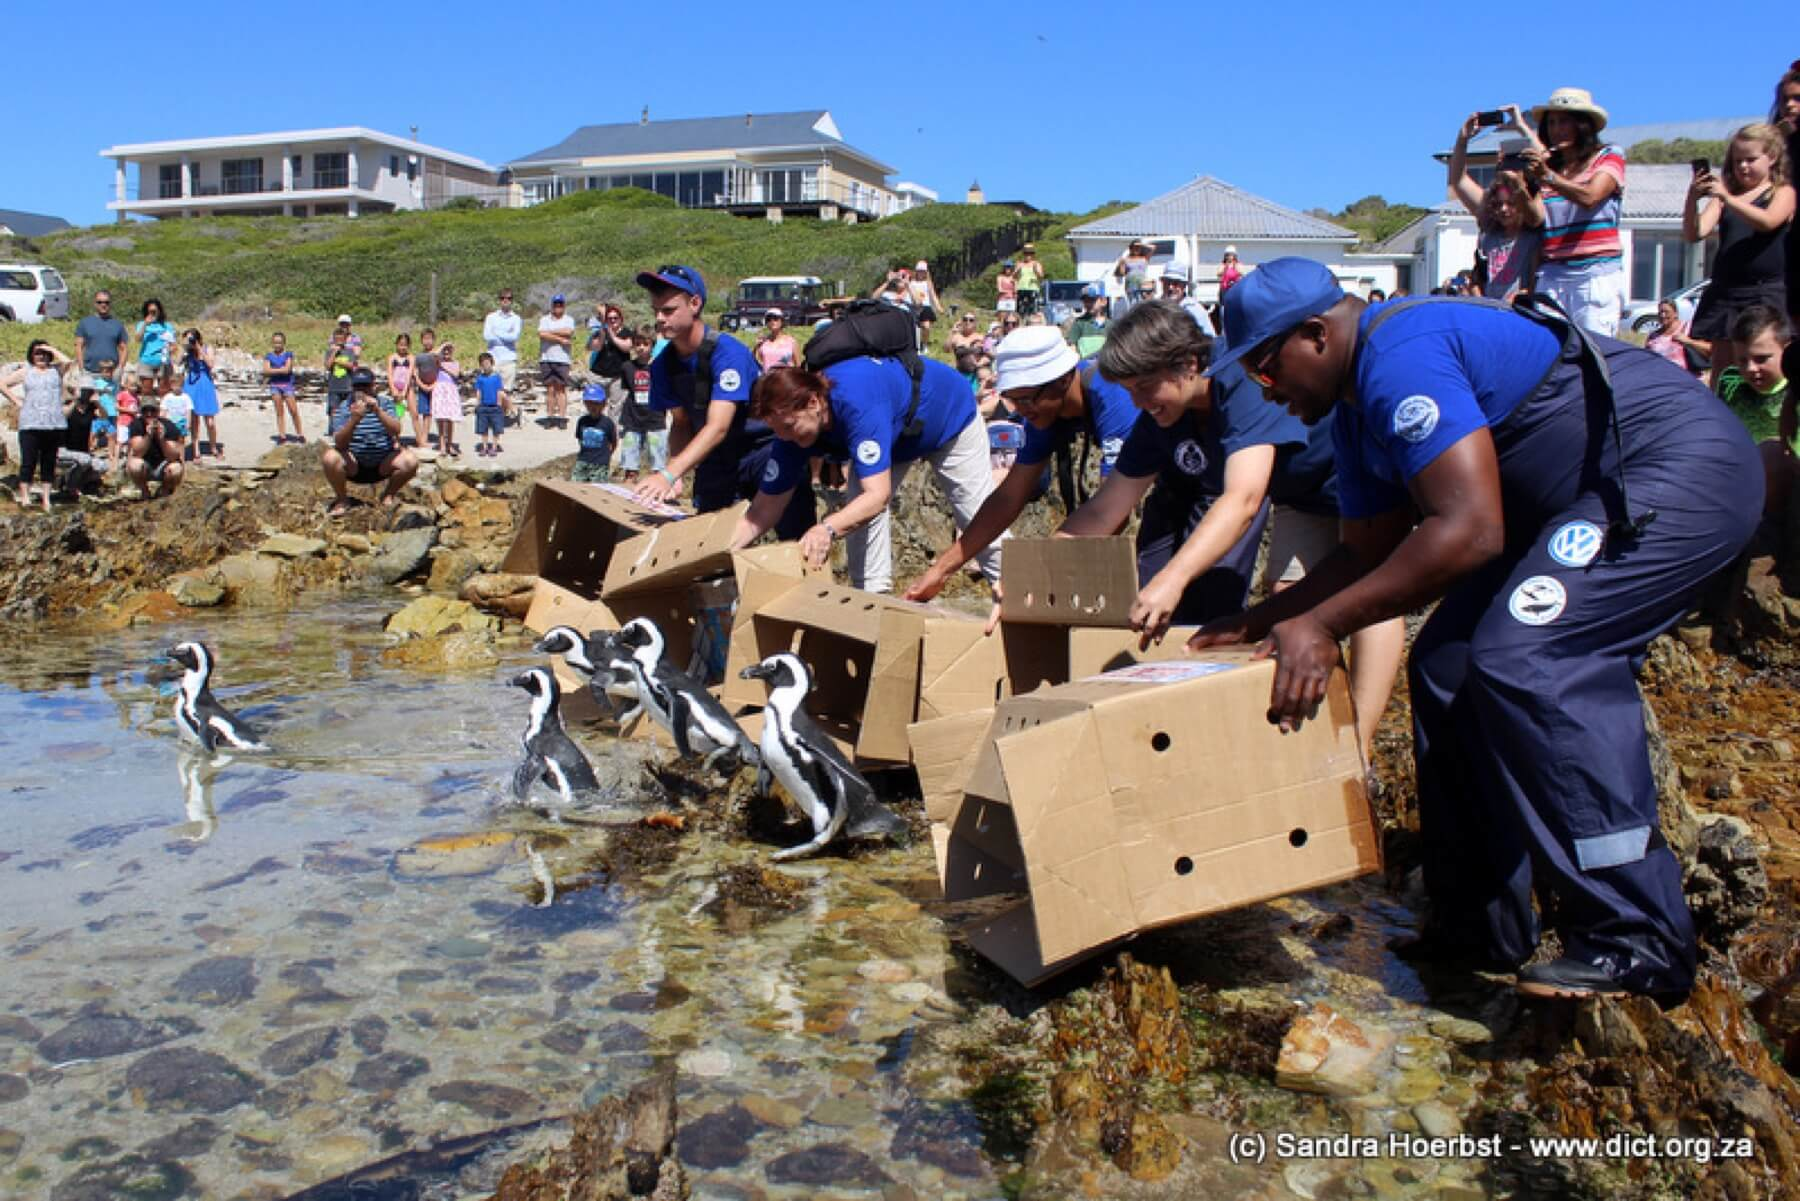 Beach Release In Kleinbaai